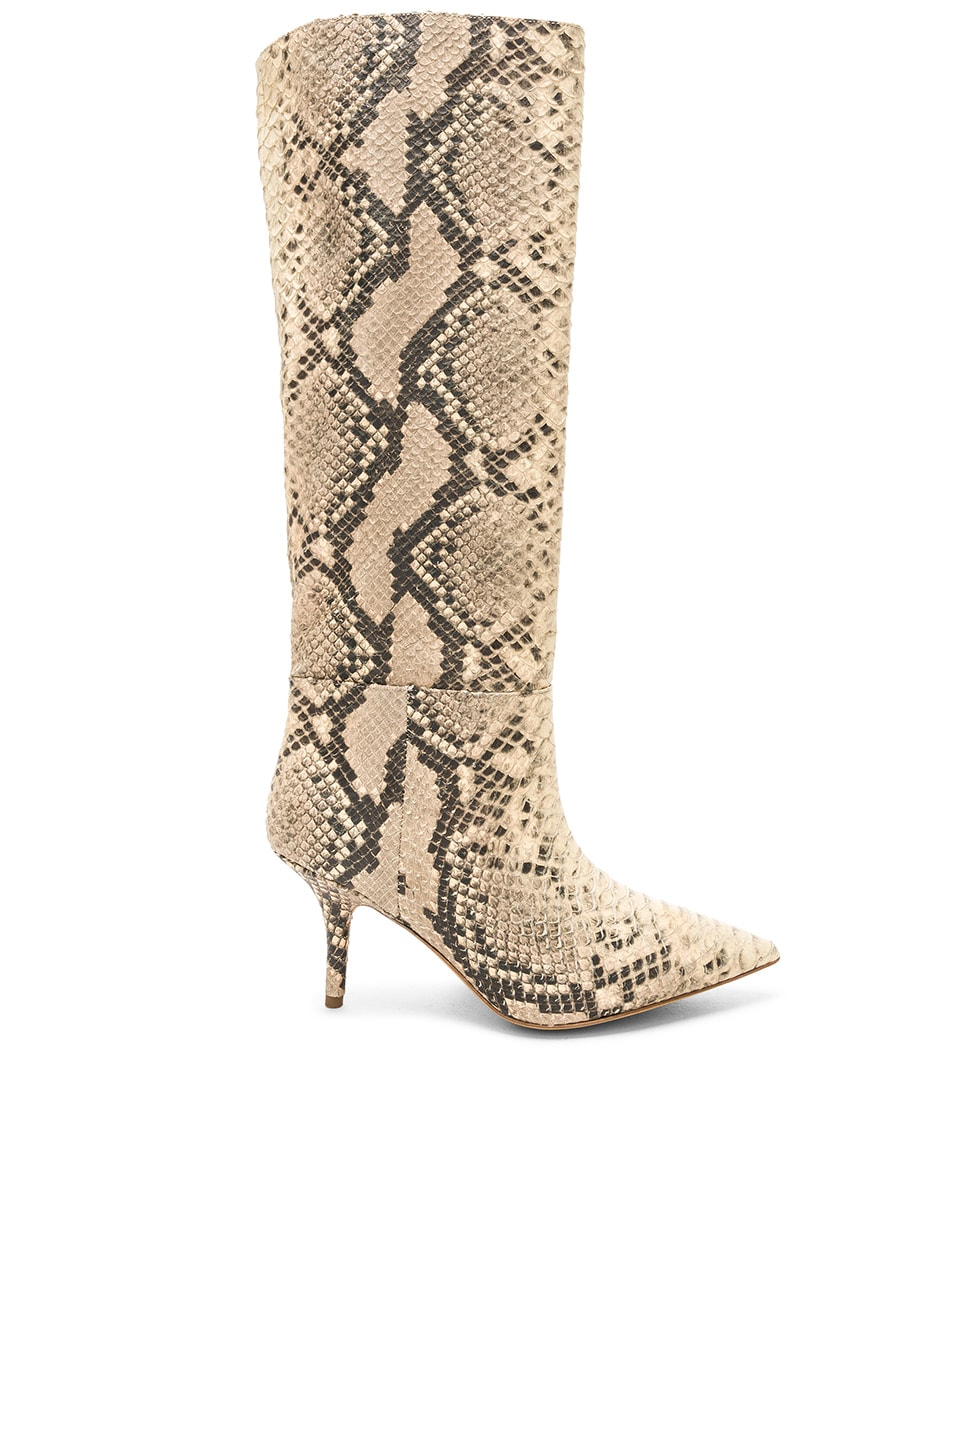 Image 1 of YEEZY Season 7 Python Embossed Knee High Boots in Roccia Mesa